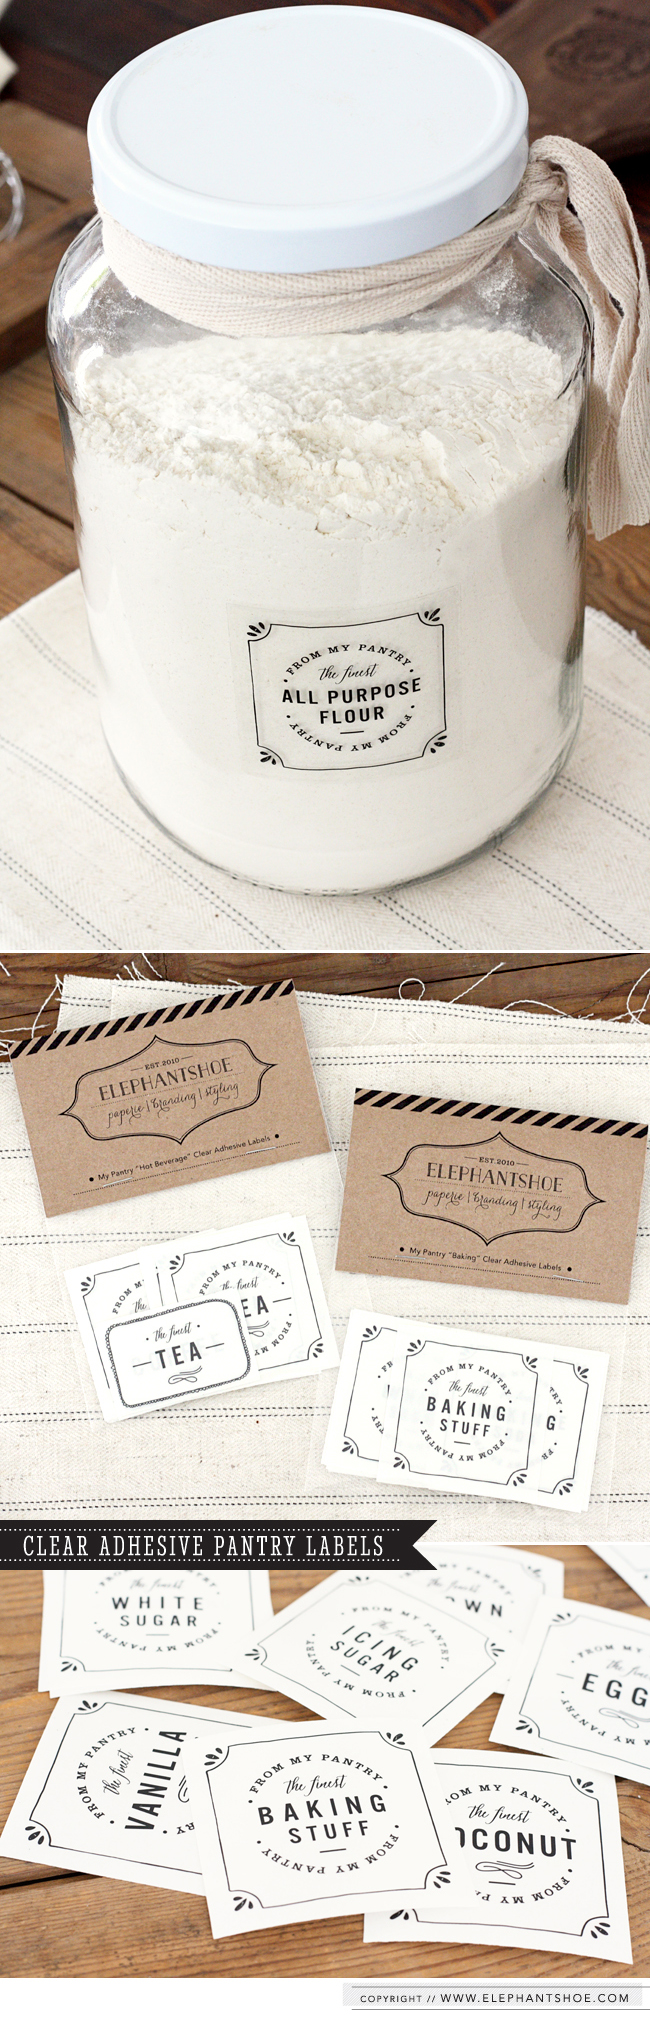 Pantry adhesive Label Elephantshoe